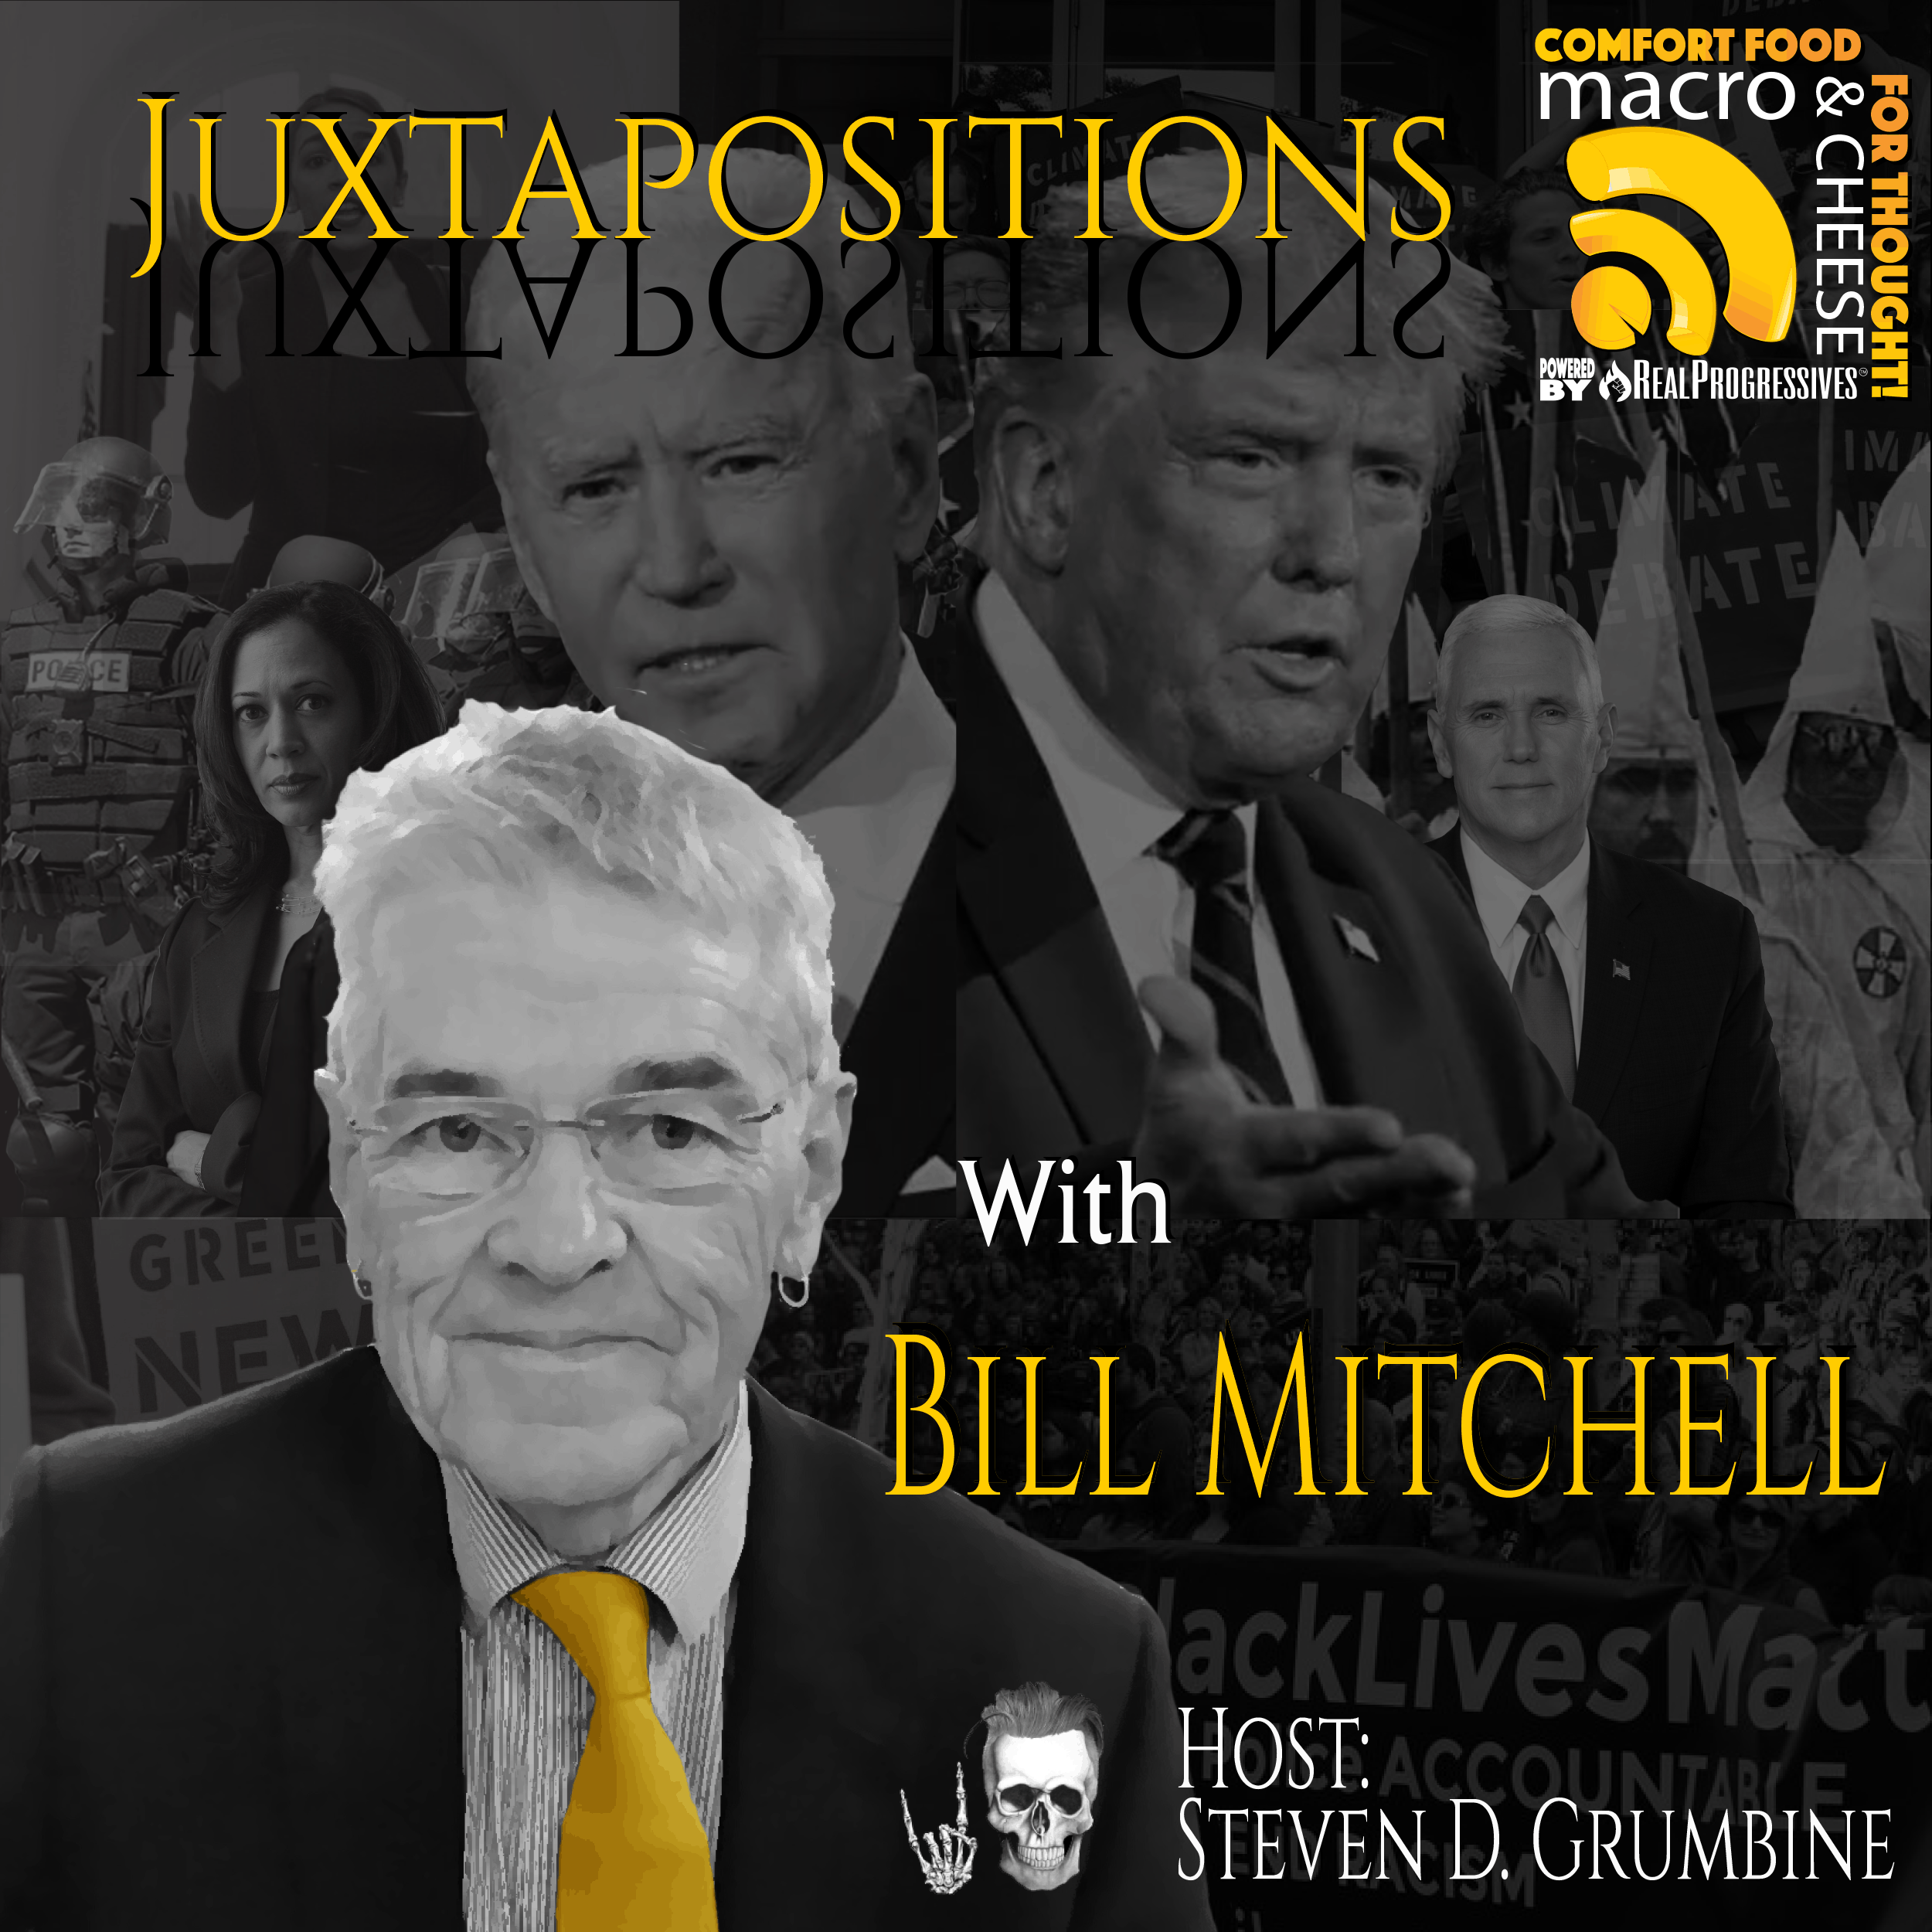 Episode 89 – Juxtapositions with Bill Mitchell